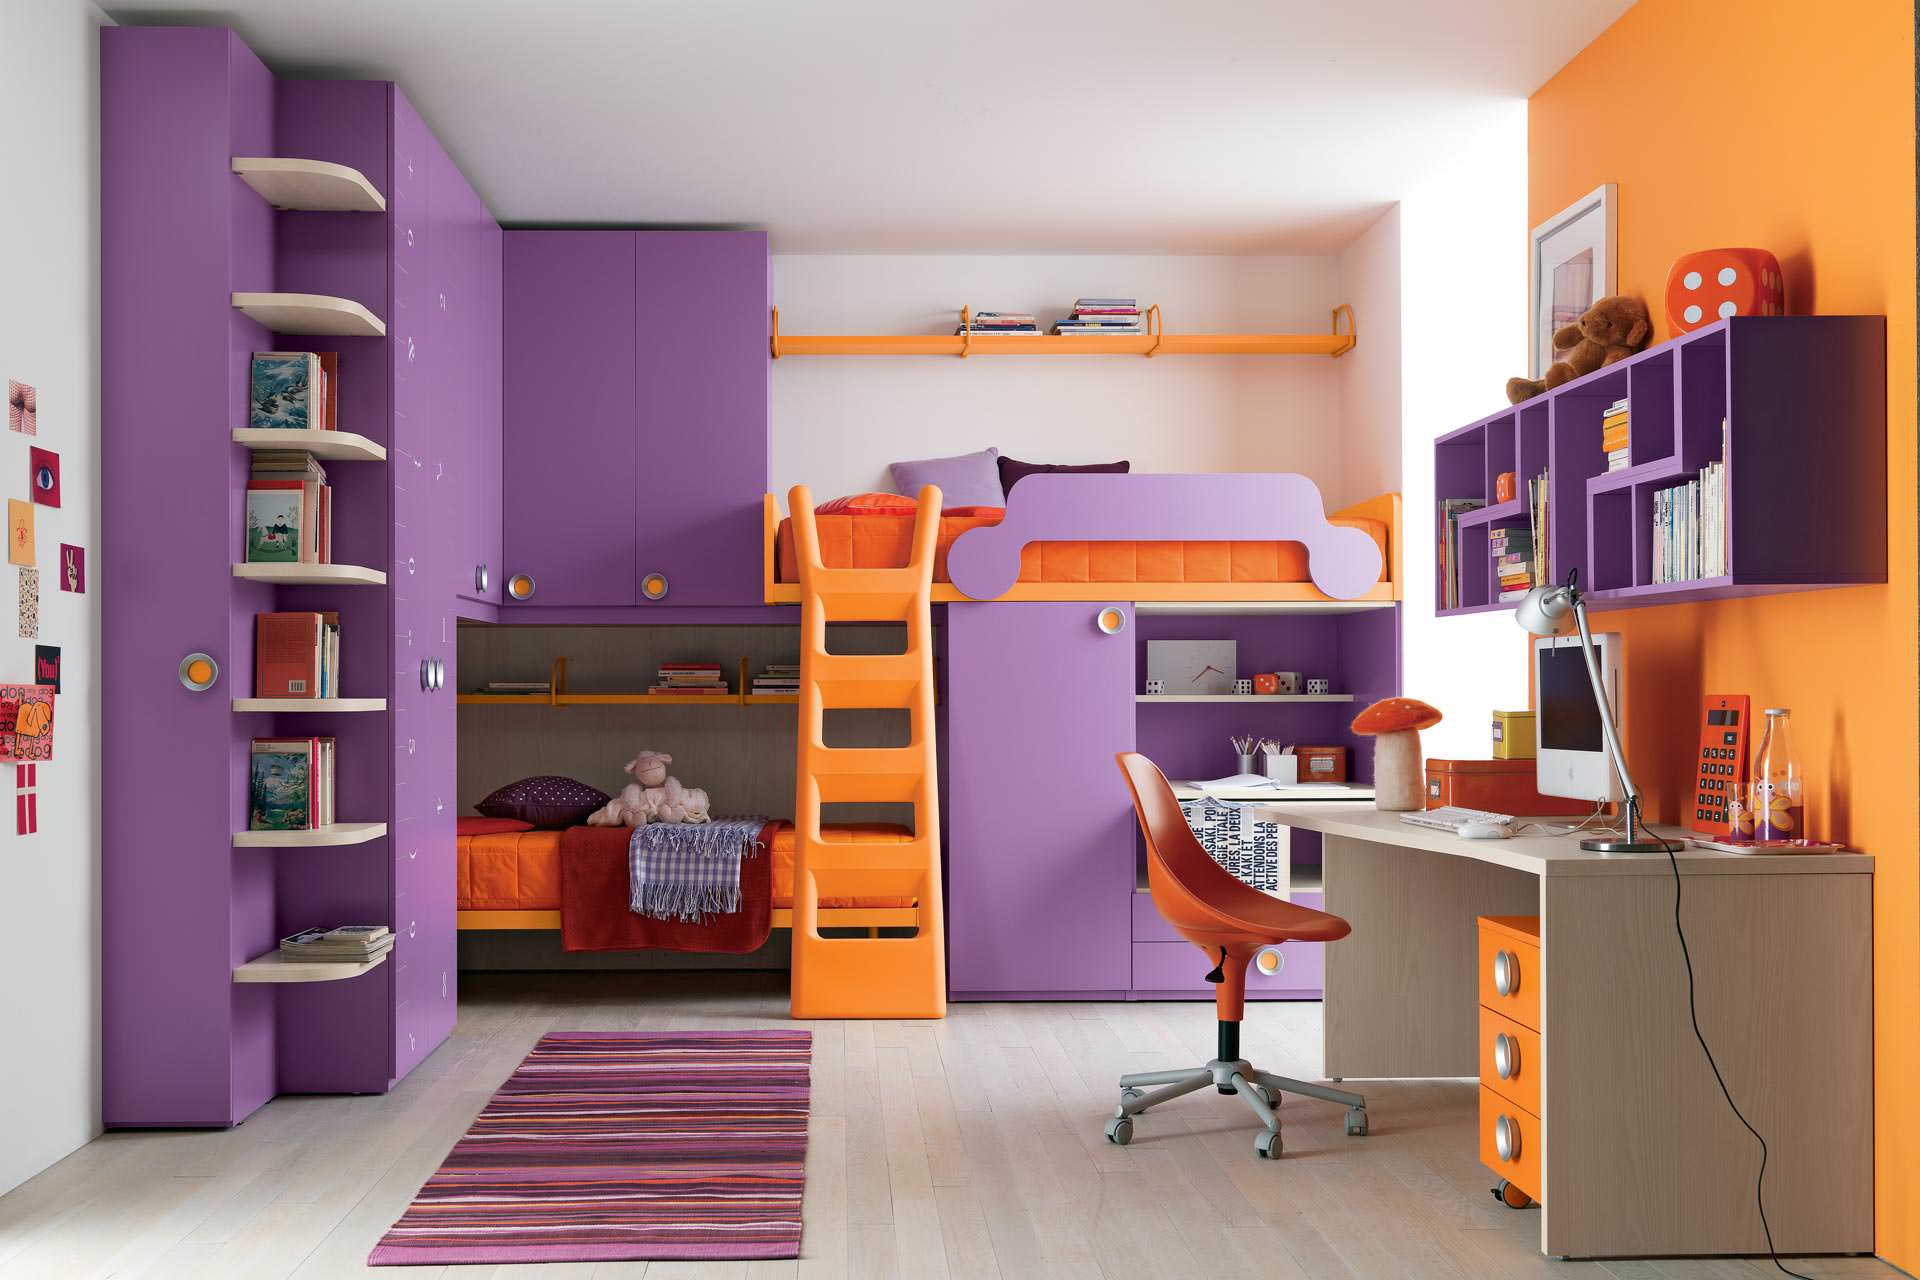 Bedroom ideas for girls with bunk beds - Girls Bunk Bed Design